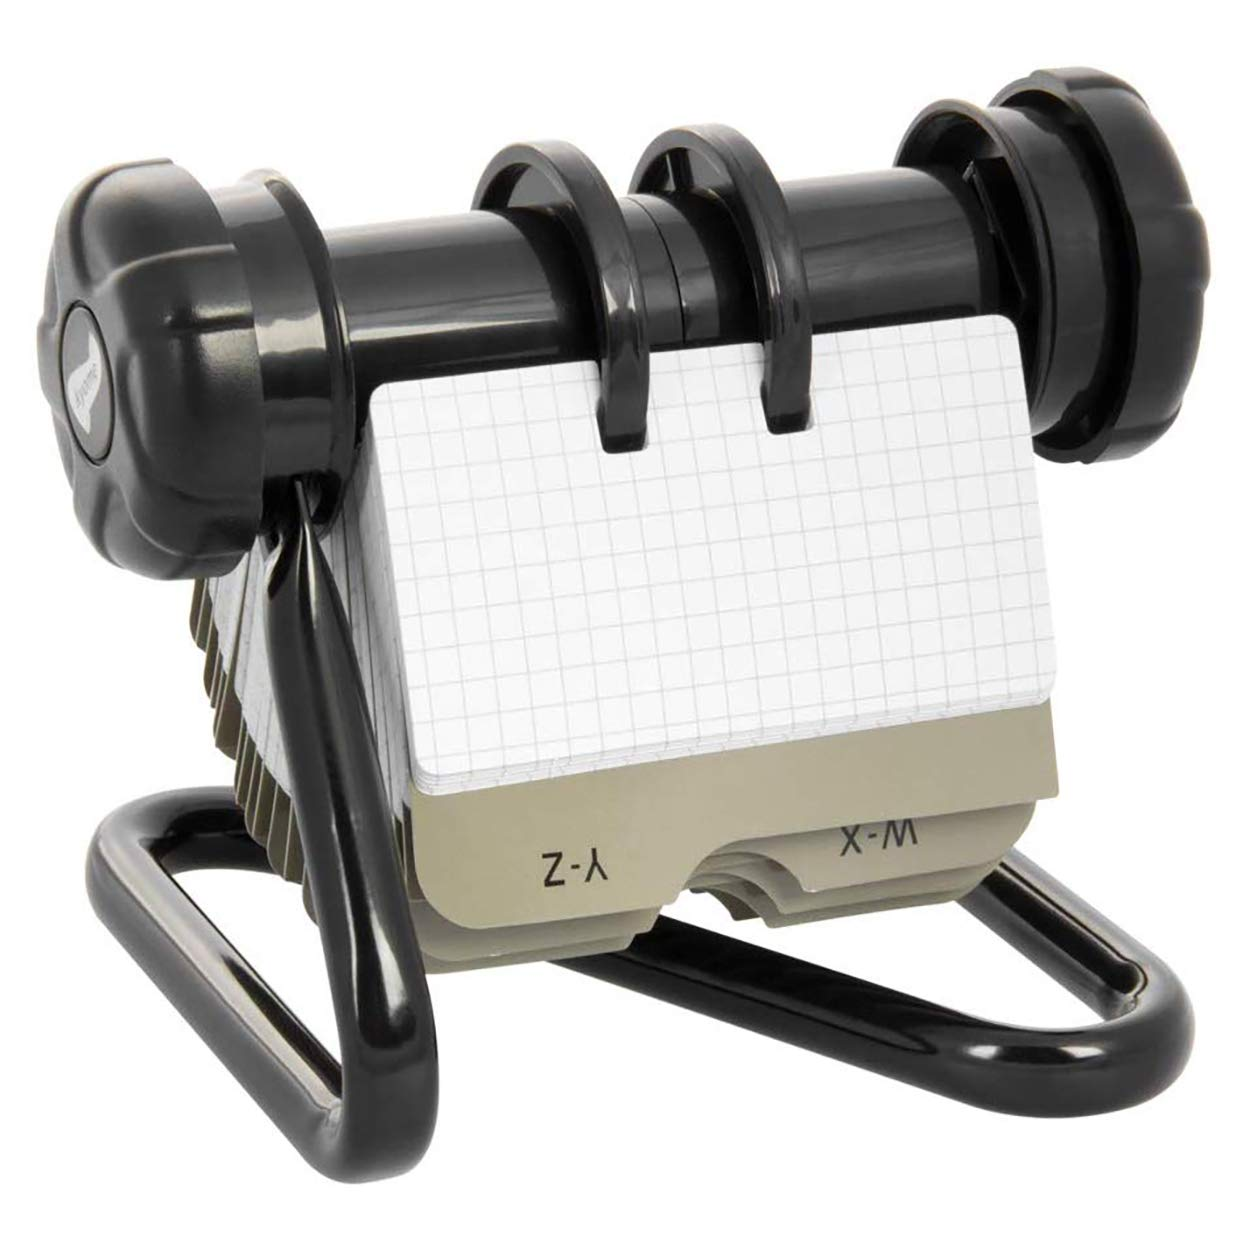 Kyome 744850 Rolodex by kyome